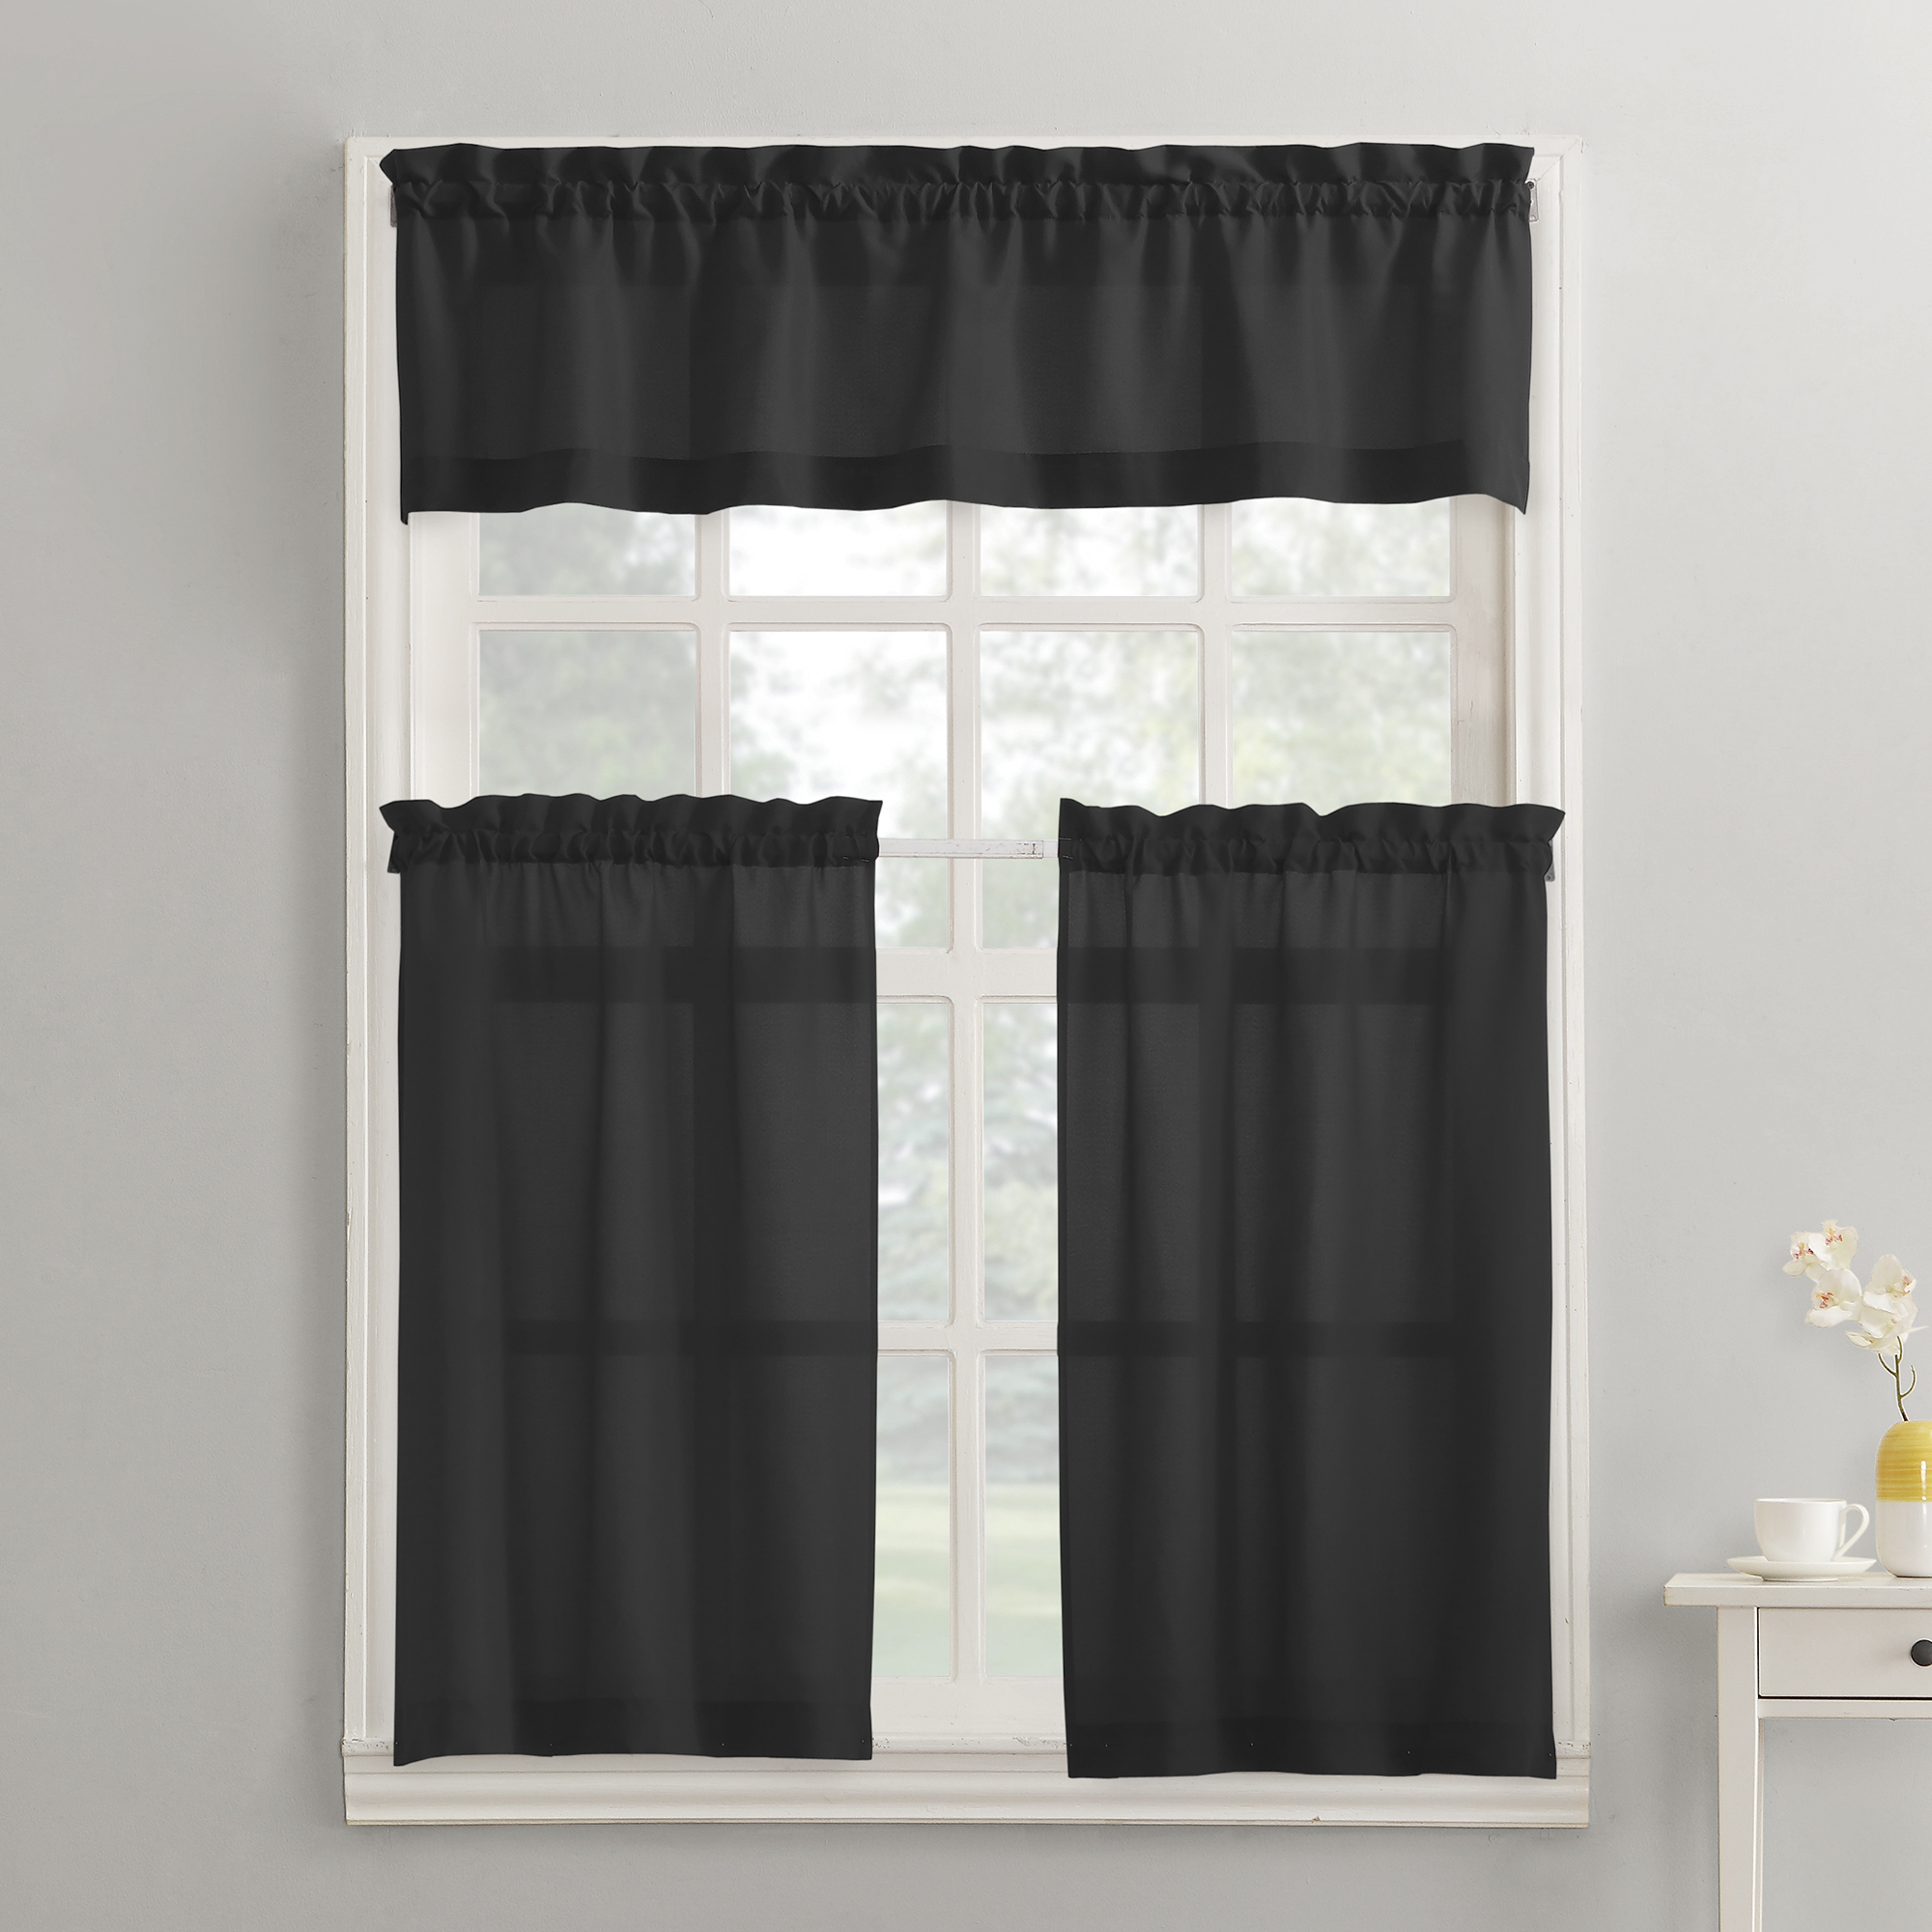 Mainstays Solid 3 Piece Kitchen Curtain Tier And Valance Set With Regard To Grey Window Curtain Tier And Valance Sets (View 3 of 20)